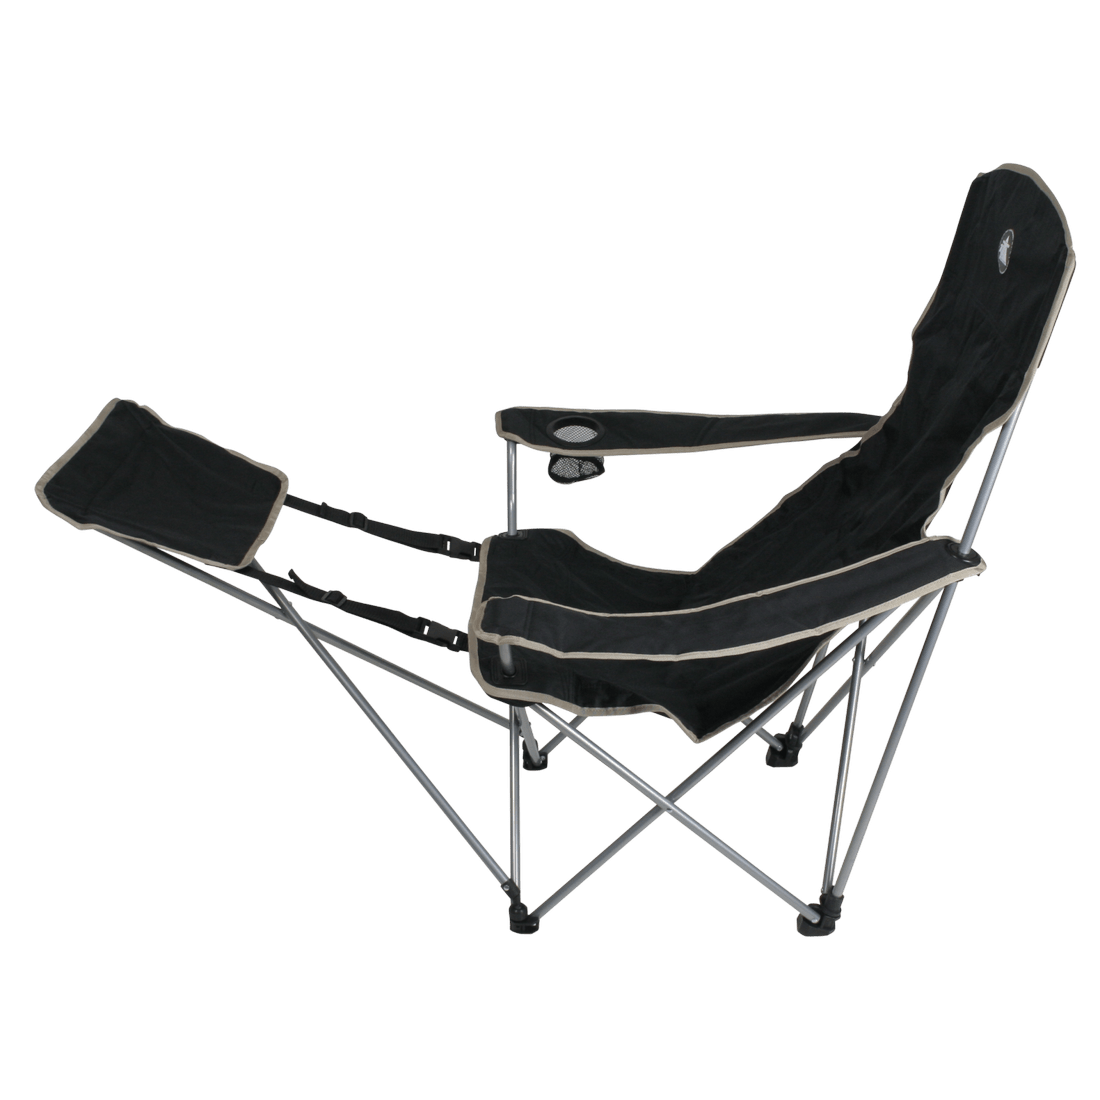 Camping Chair With Footrest 10t Quickfold Plus Mobile Camping Chair With Footrest